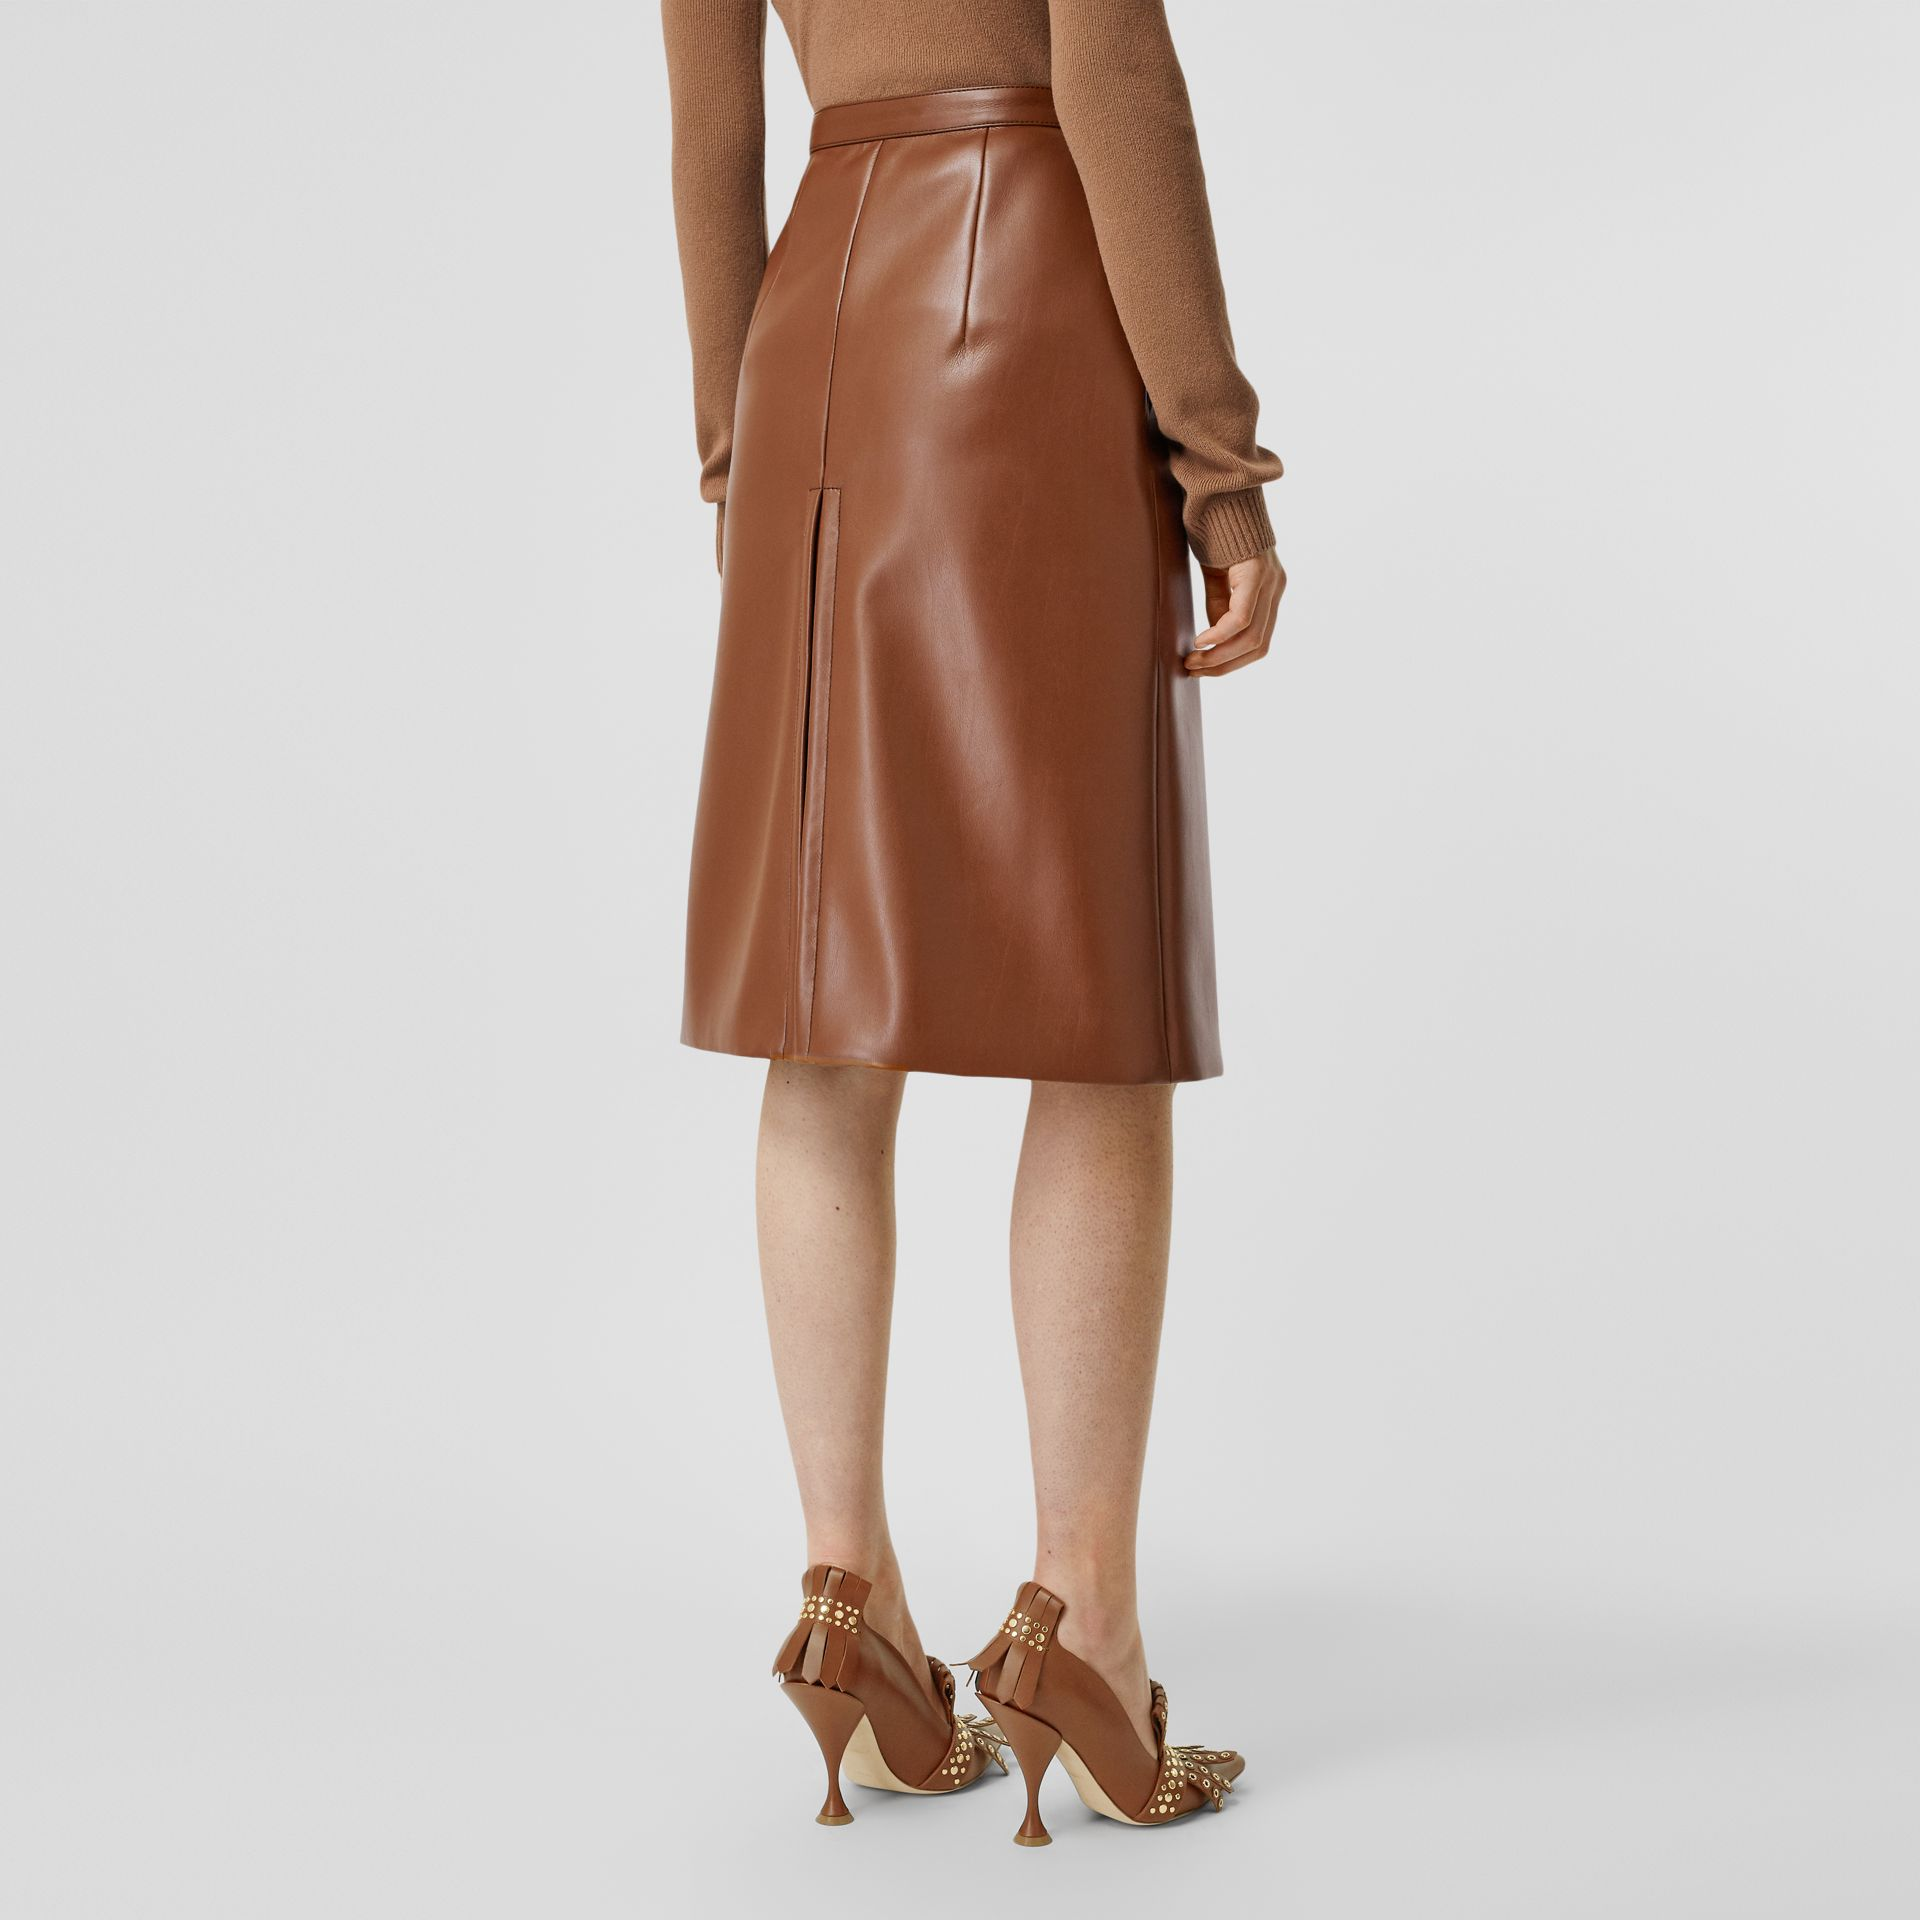 Box Pleat Detail Faux Leather Skirt in Dark Cheshnut Brown - Women | Burberry United Kingdom - gallery image 2